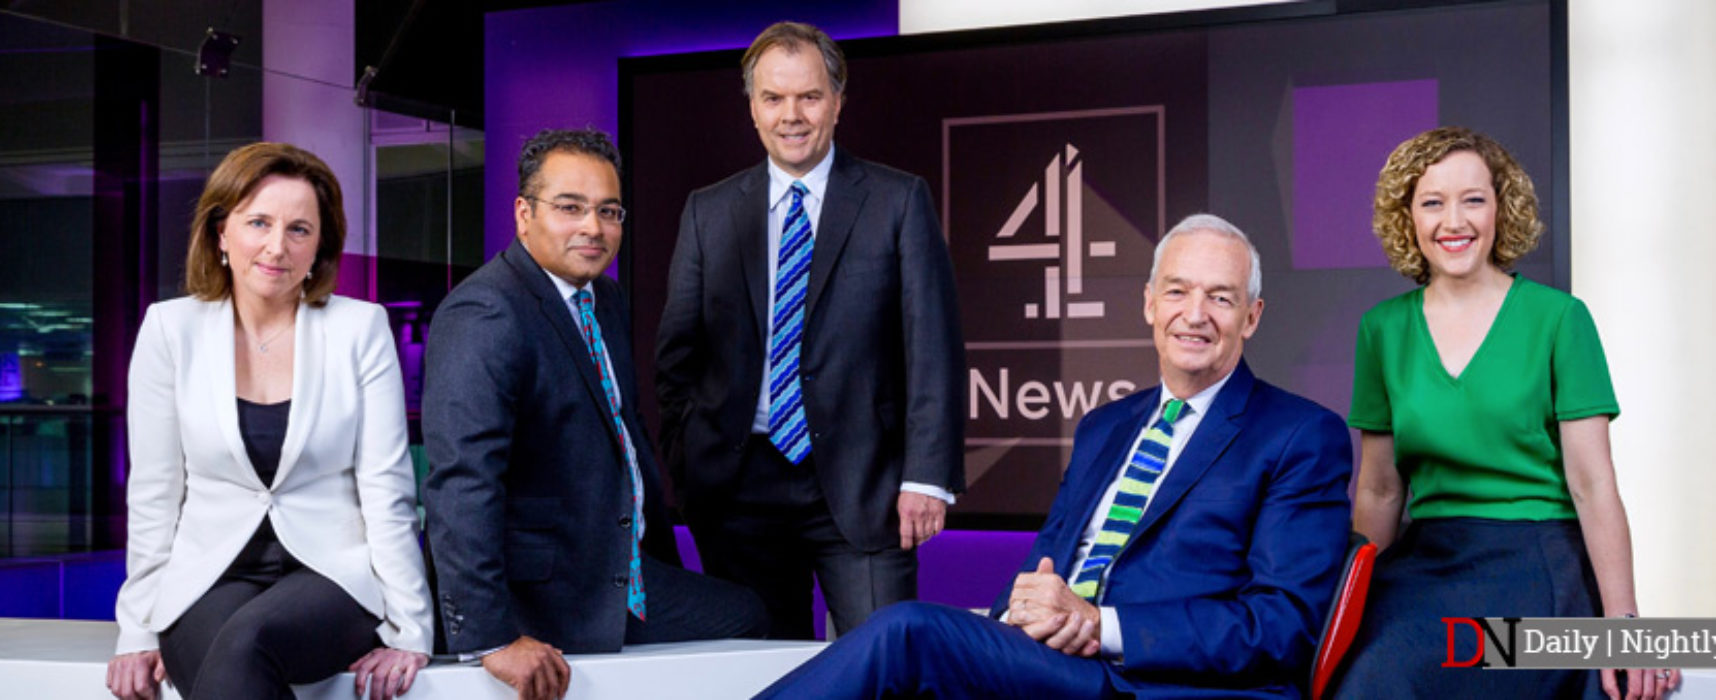 Channel 4 to air Coronavirus news special